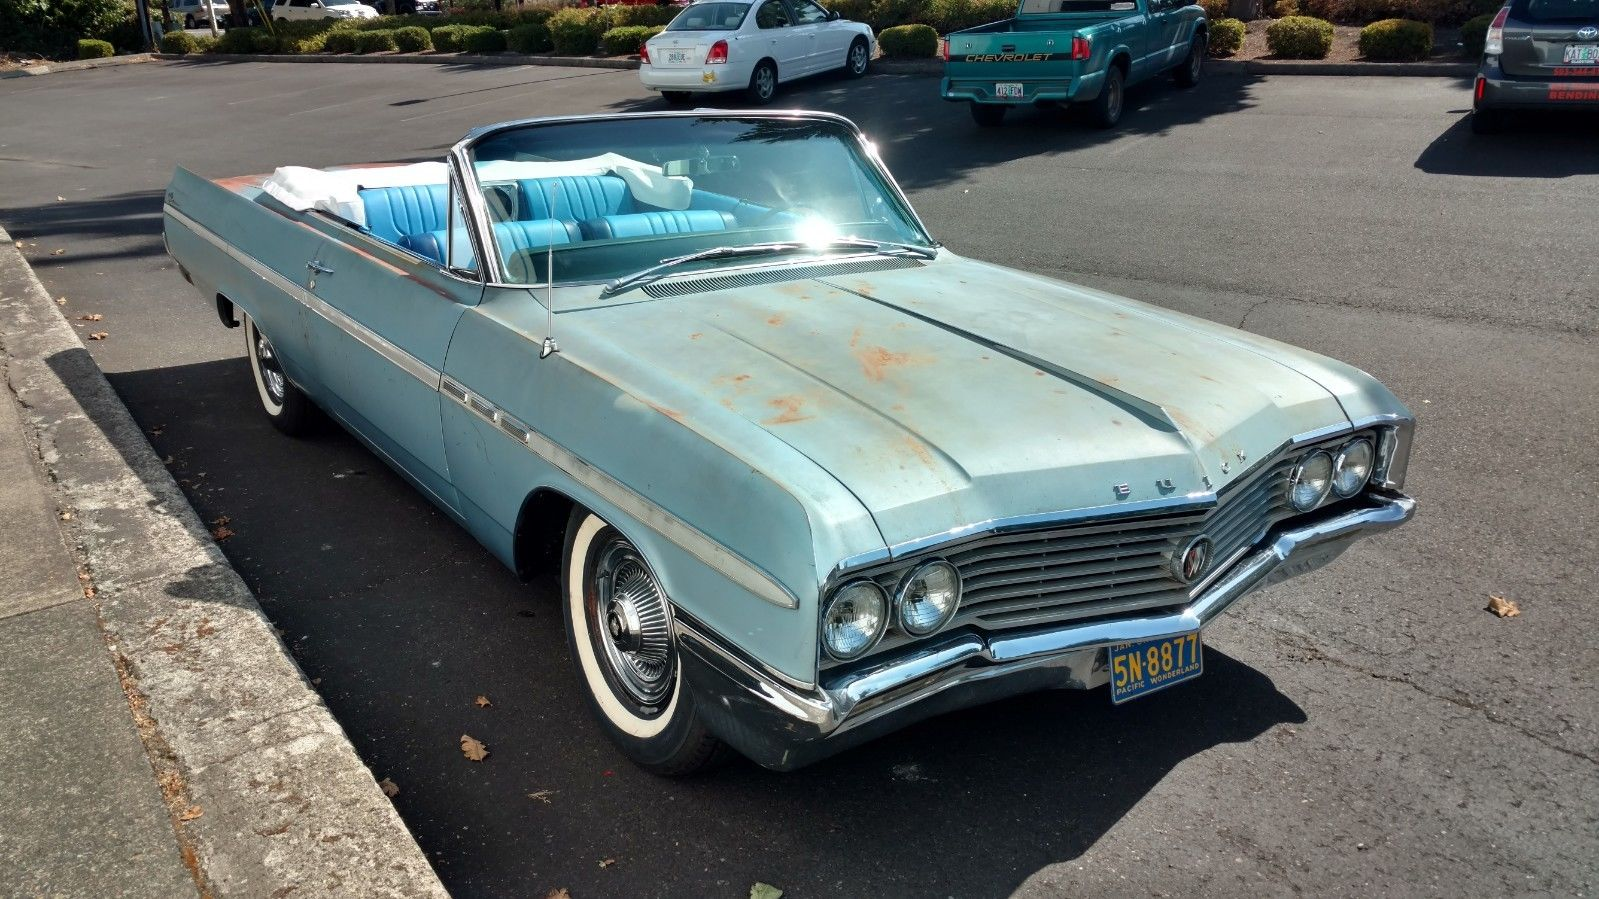 Do They Come Cooler Than This: 1964 LeSabre Convertible With A Cool Engine, New Parts, and Just Enough Rash To Rule